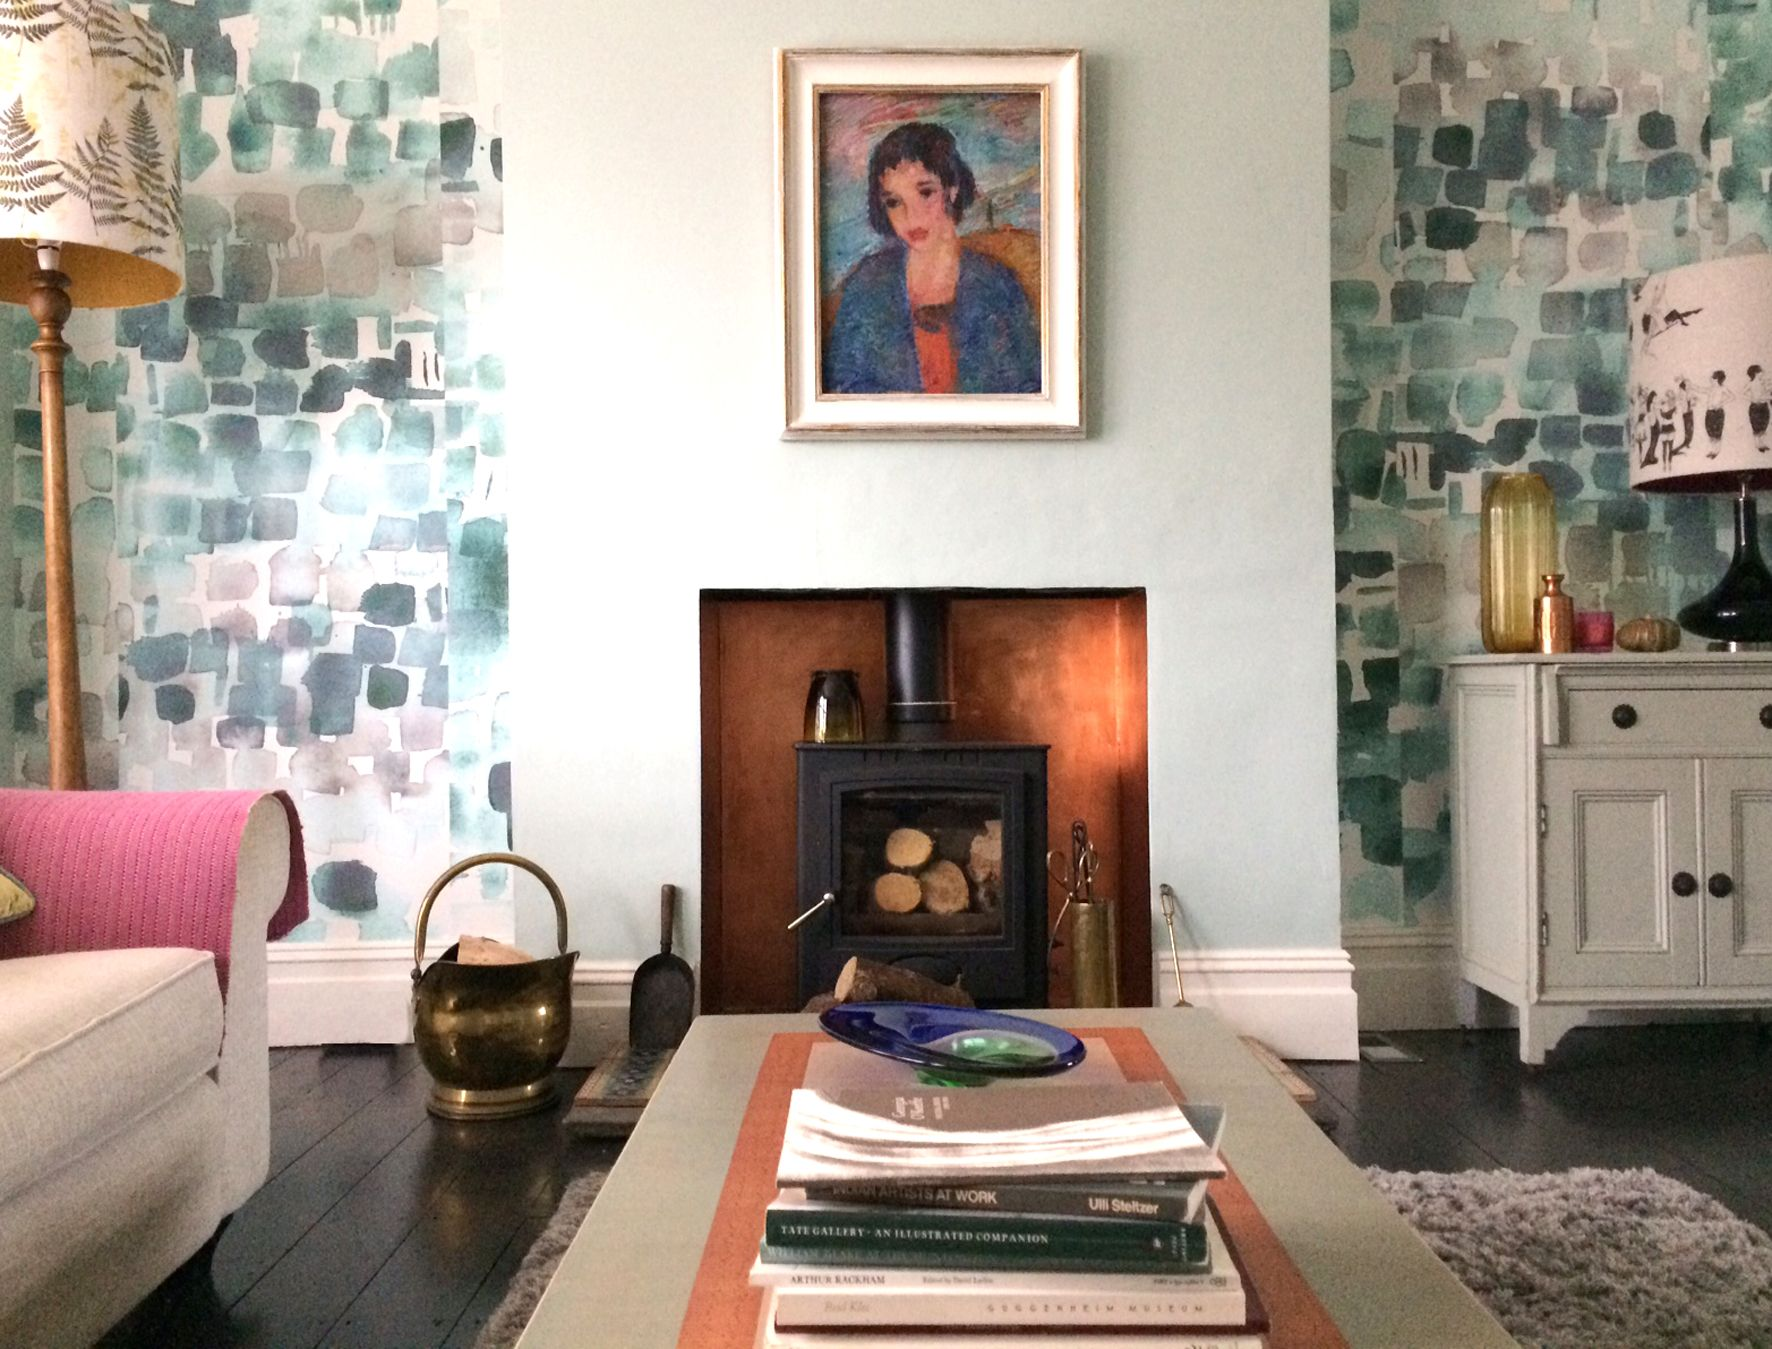 Watercolour Wallpaper In Jade Green Looks Amazing Next To The Copper Fireplace This Sussex Home